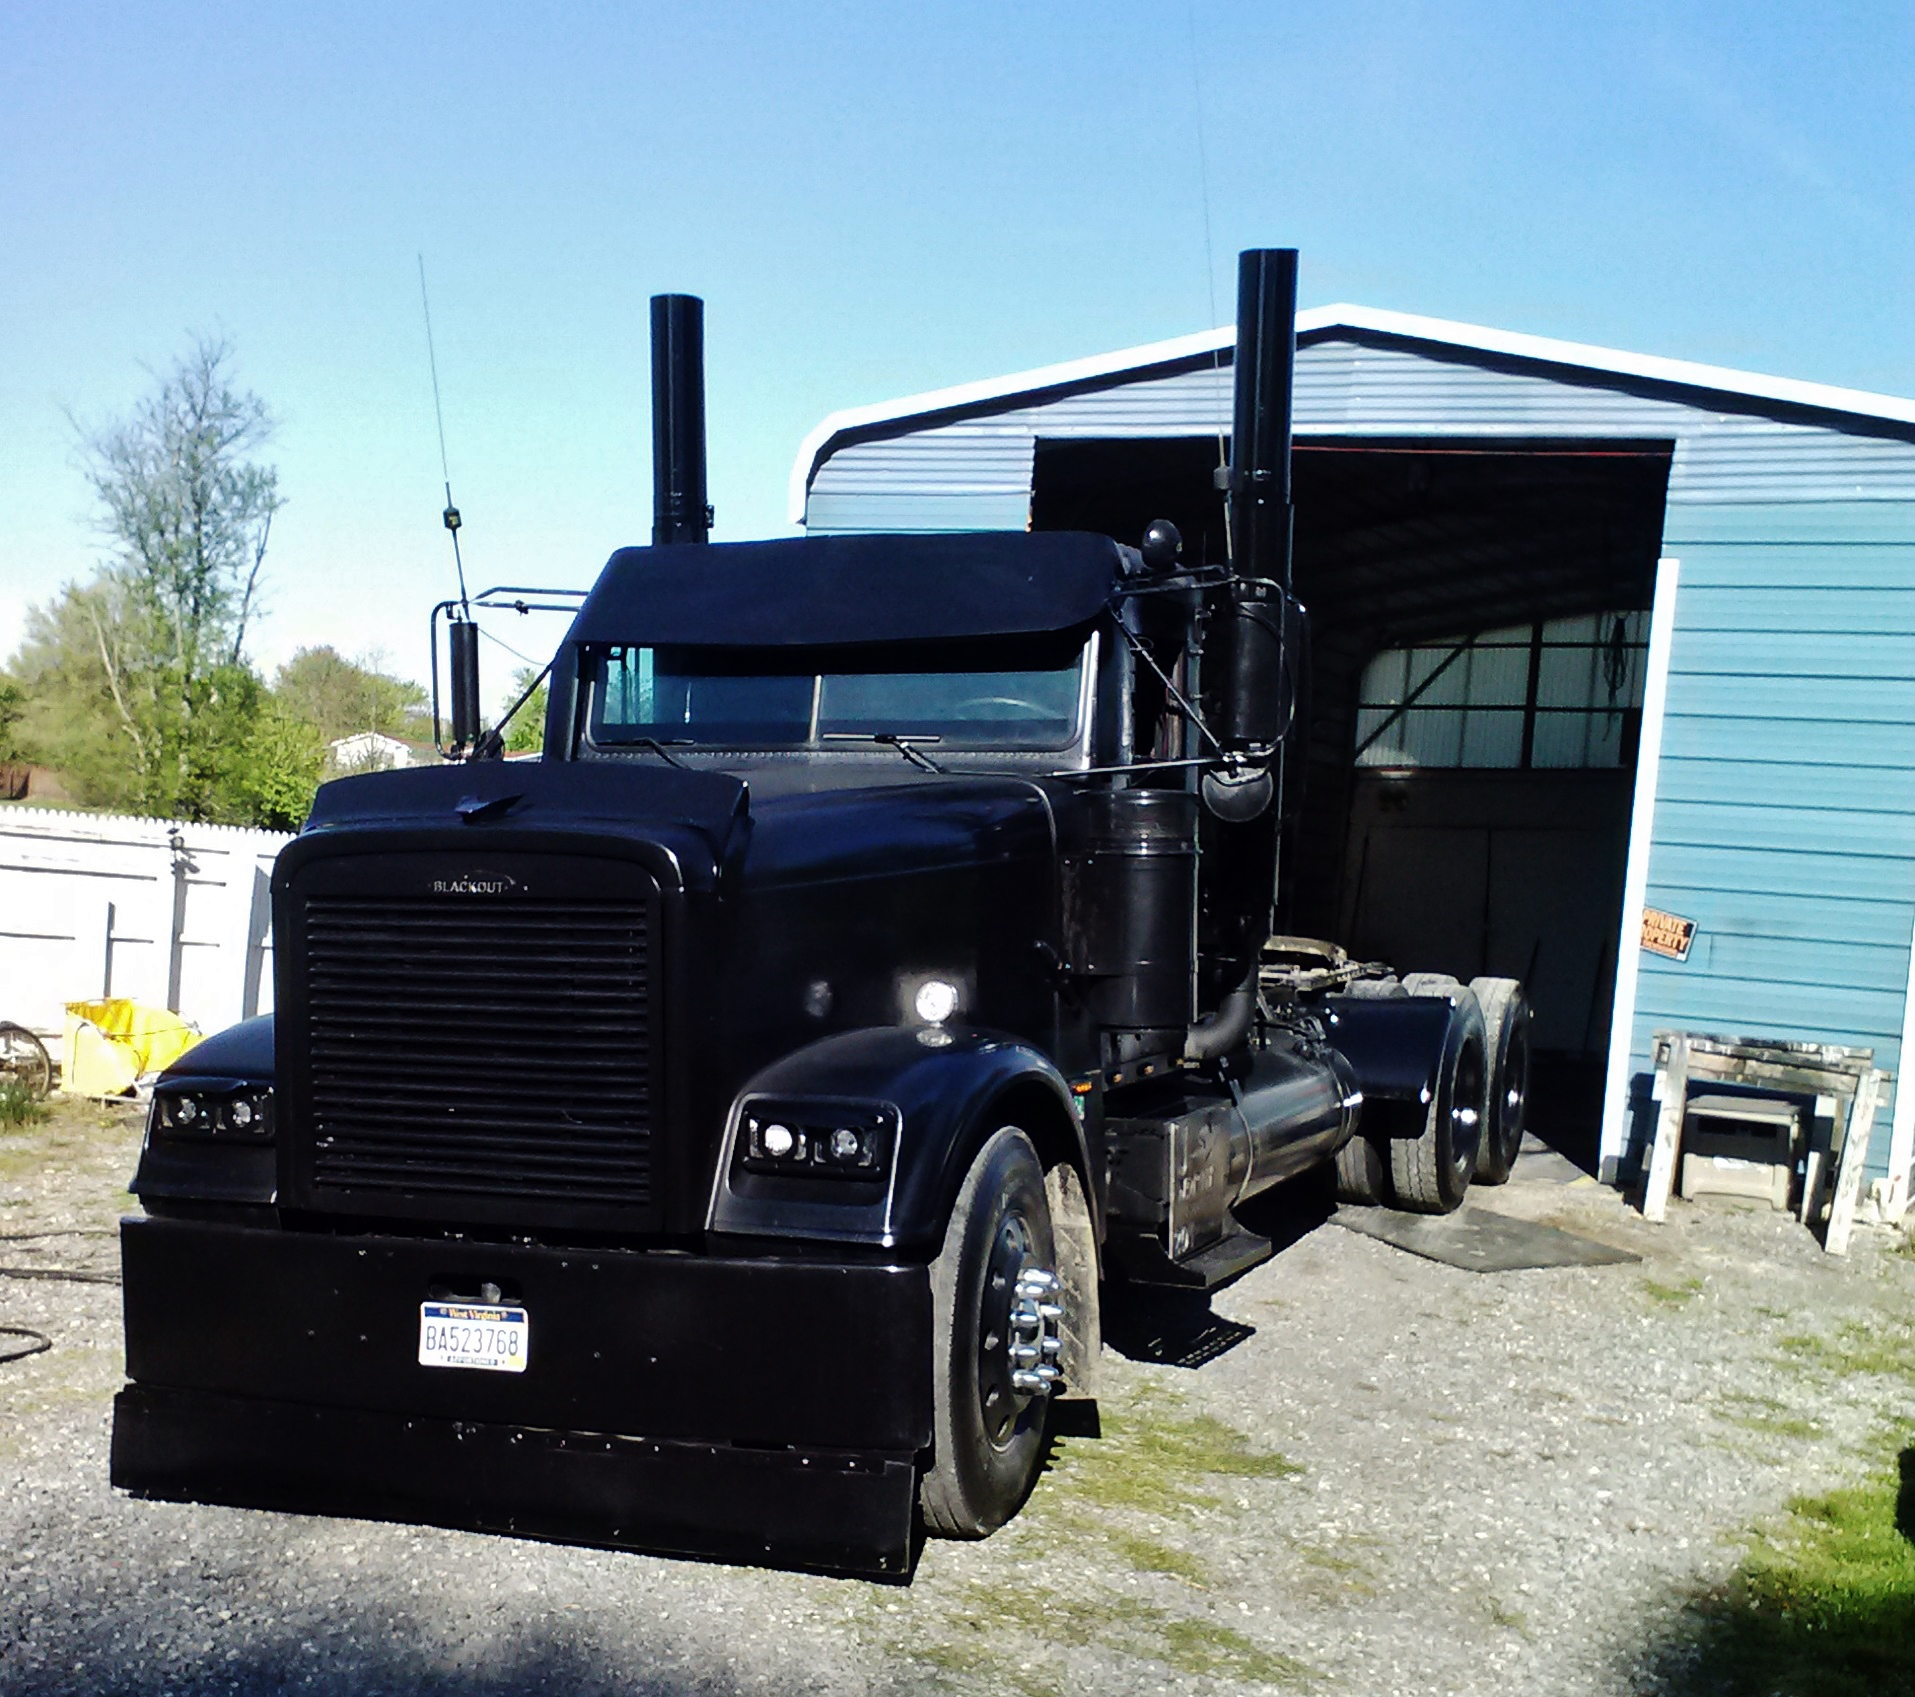 'Black Out' 1999 Freightliner of Charles Timbrook